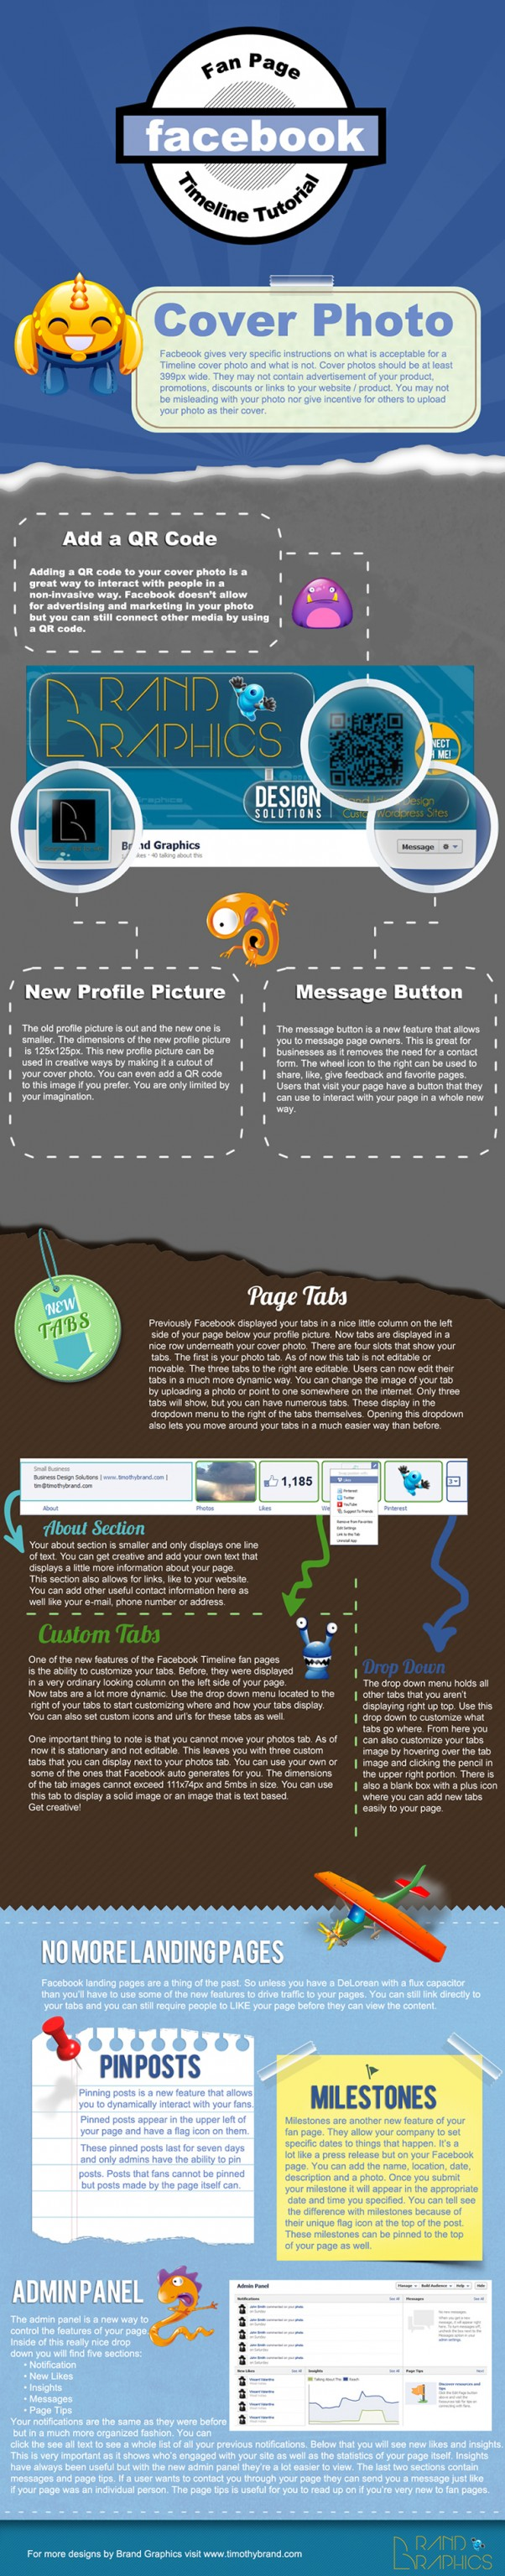 The new Facebook Timeline for pages infographic....